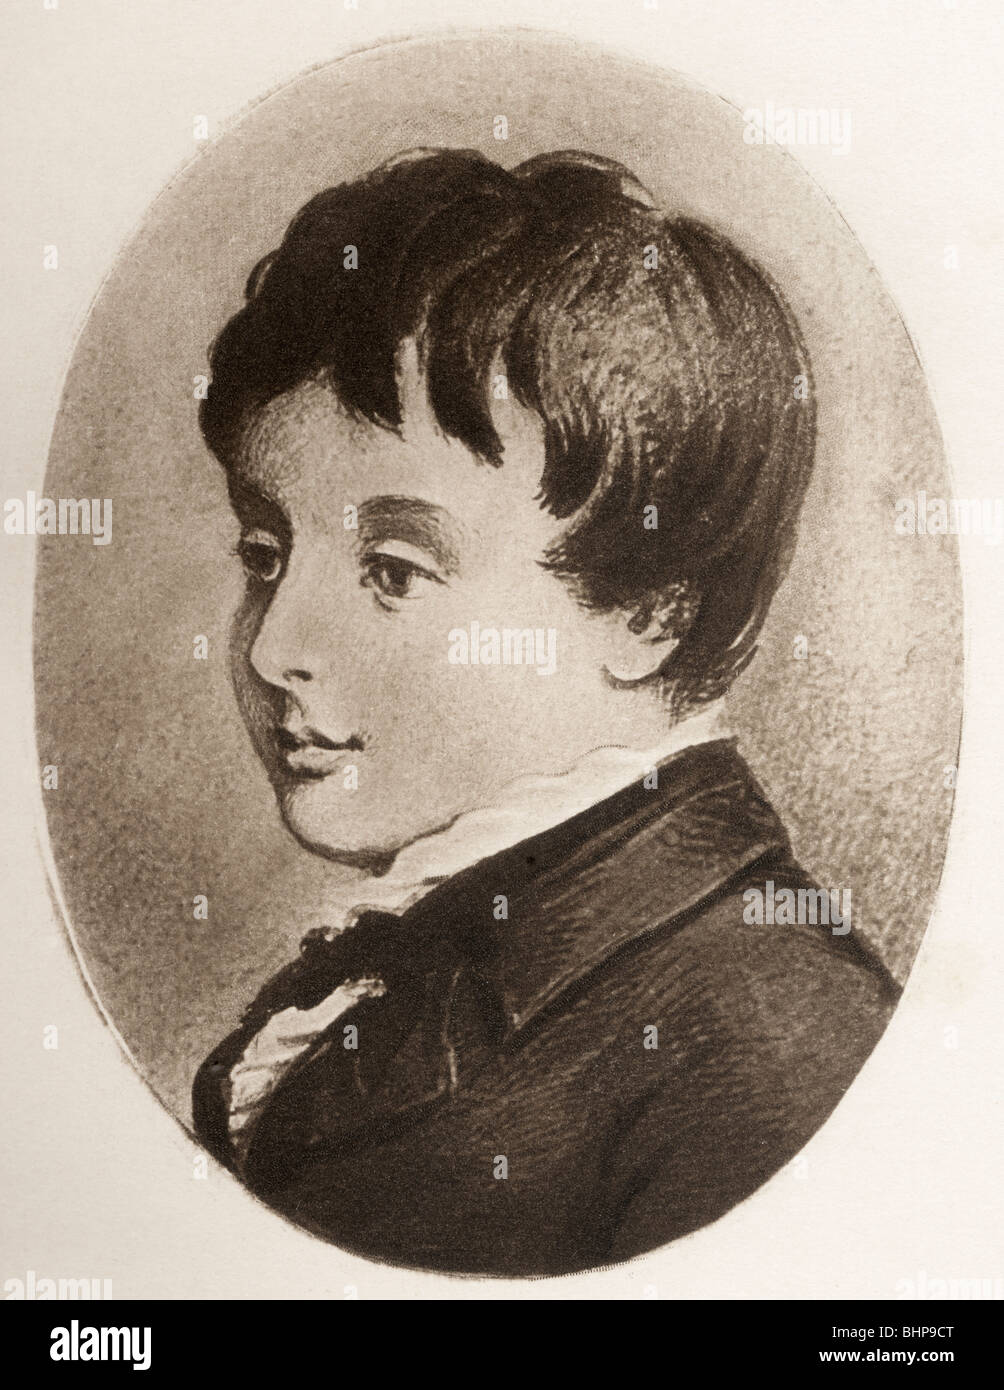 Charles Stewart Parnell, 1846 – 1891 aged 8. - Stock Image